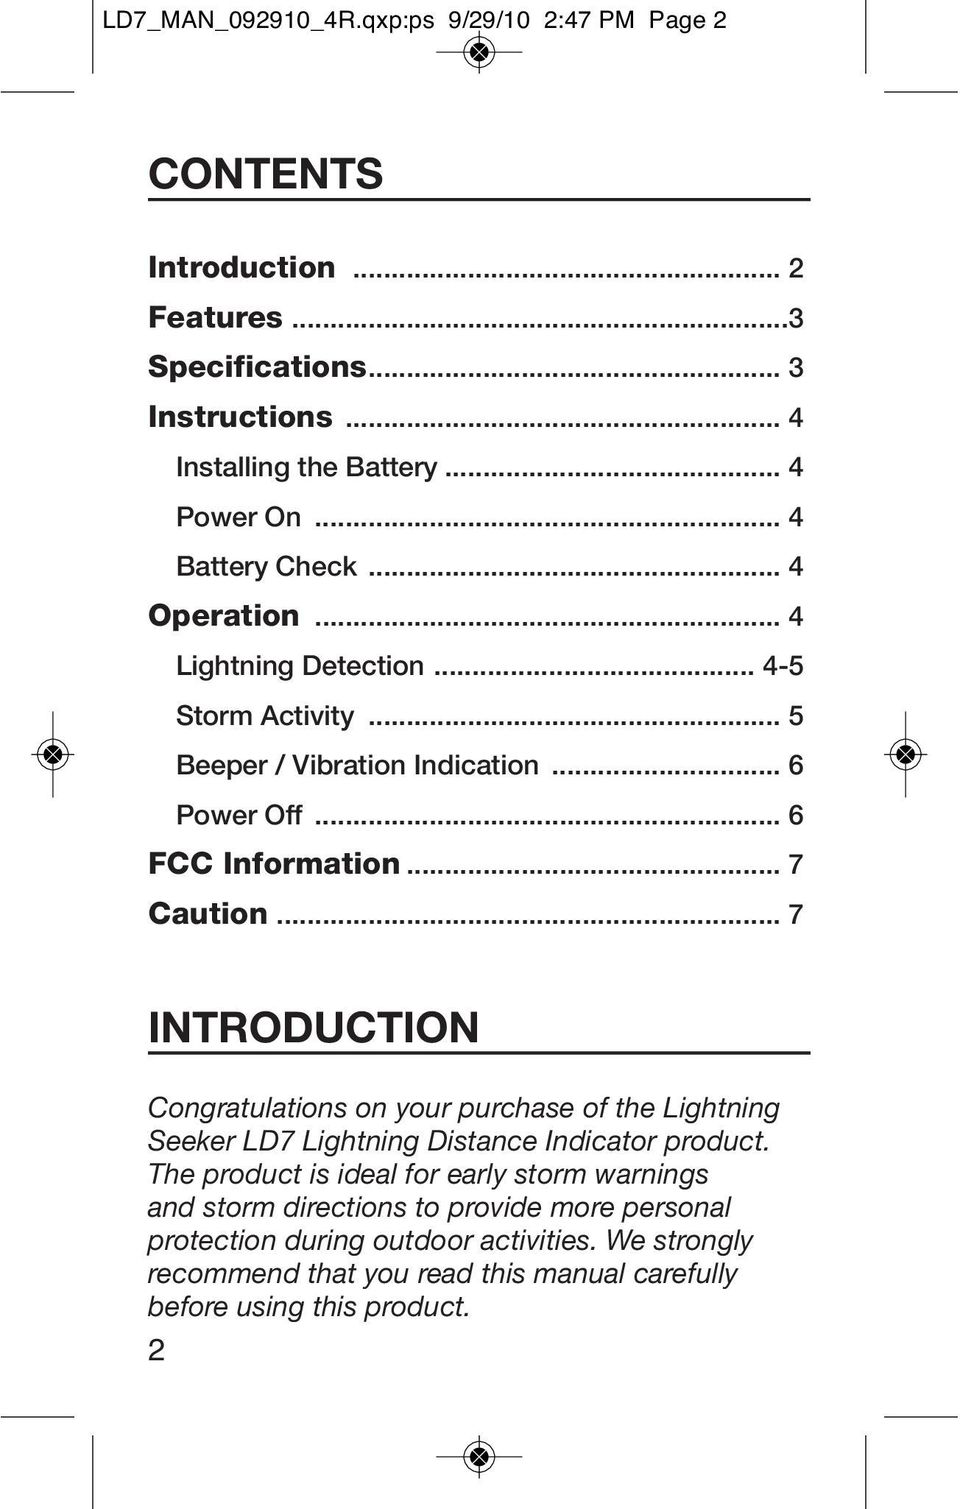 .. 7 INTRODUCTION Congratulations on your purchase of the Lightning Seeker LD7 Lightning Distance Indicator product.